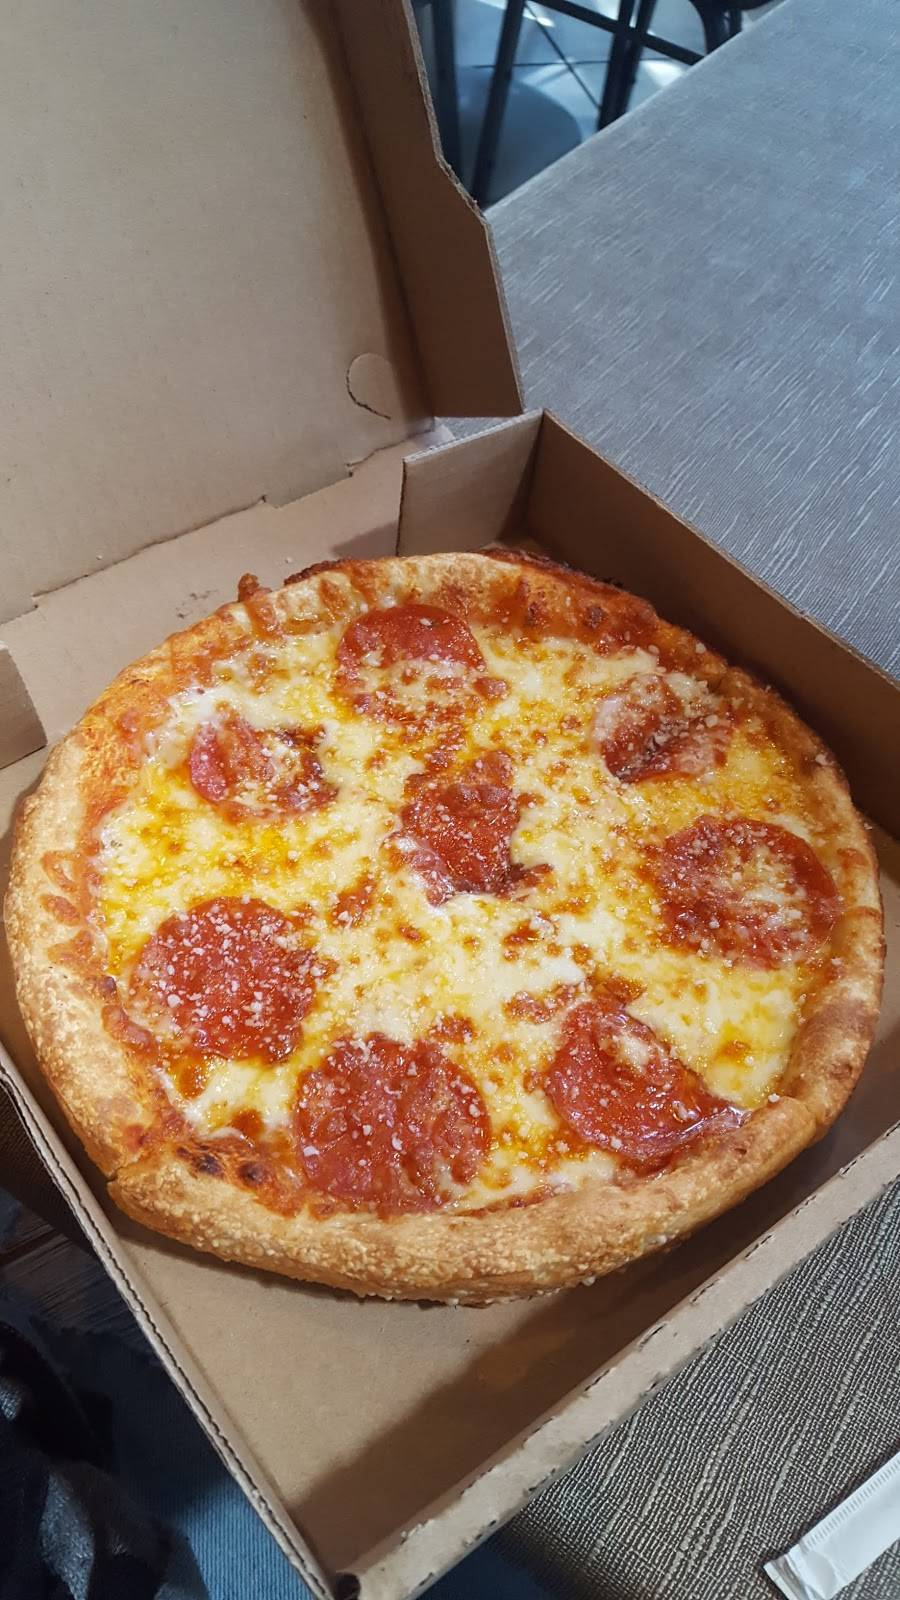 Mama Mia Pizza and Wings | meal takeaway | 78 Broad St NW, Atlanta, GA 30303, USA | 4042219296 OR +1 404-221-9296